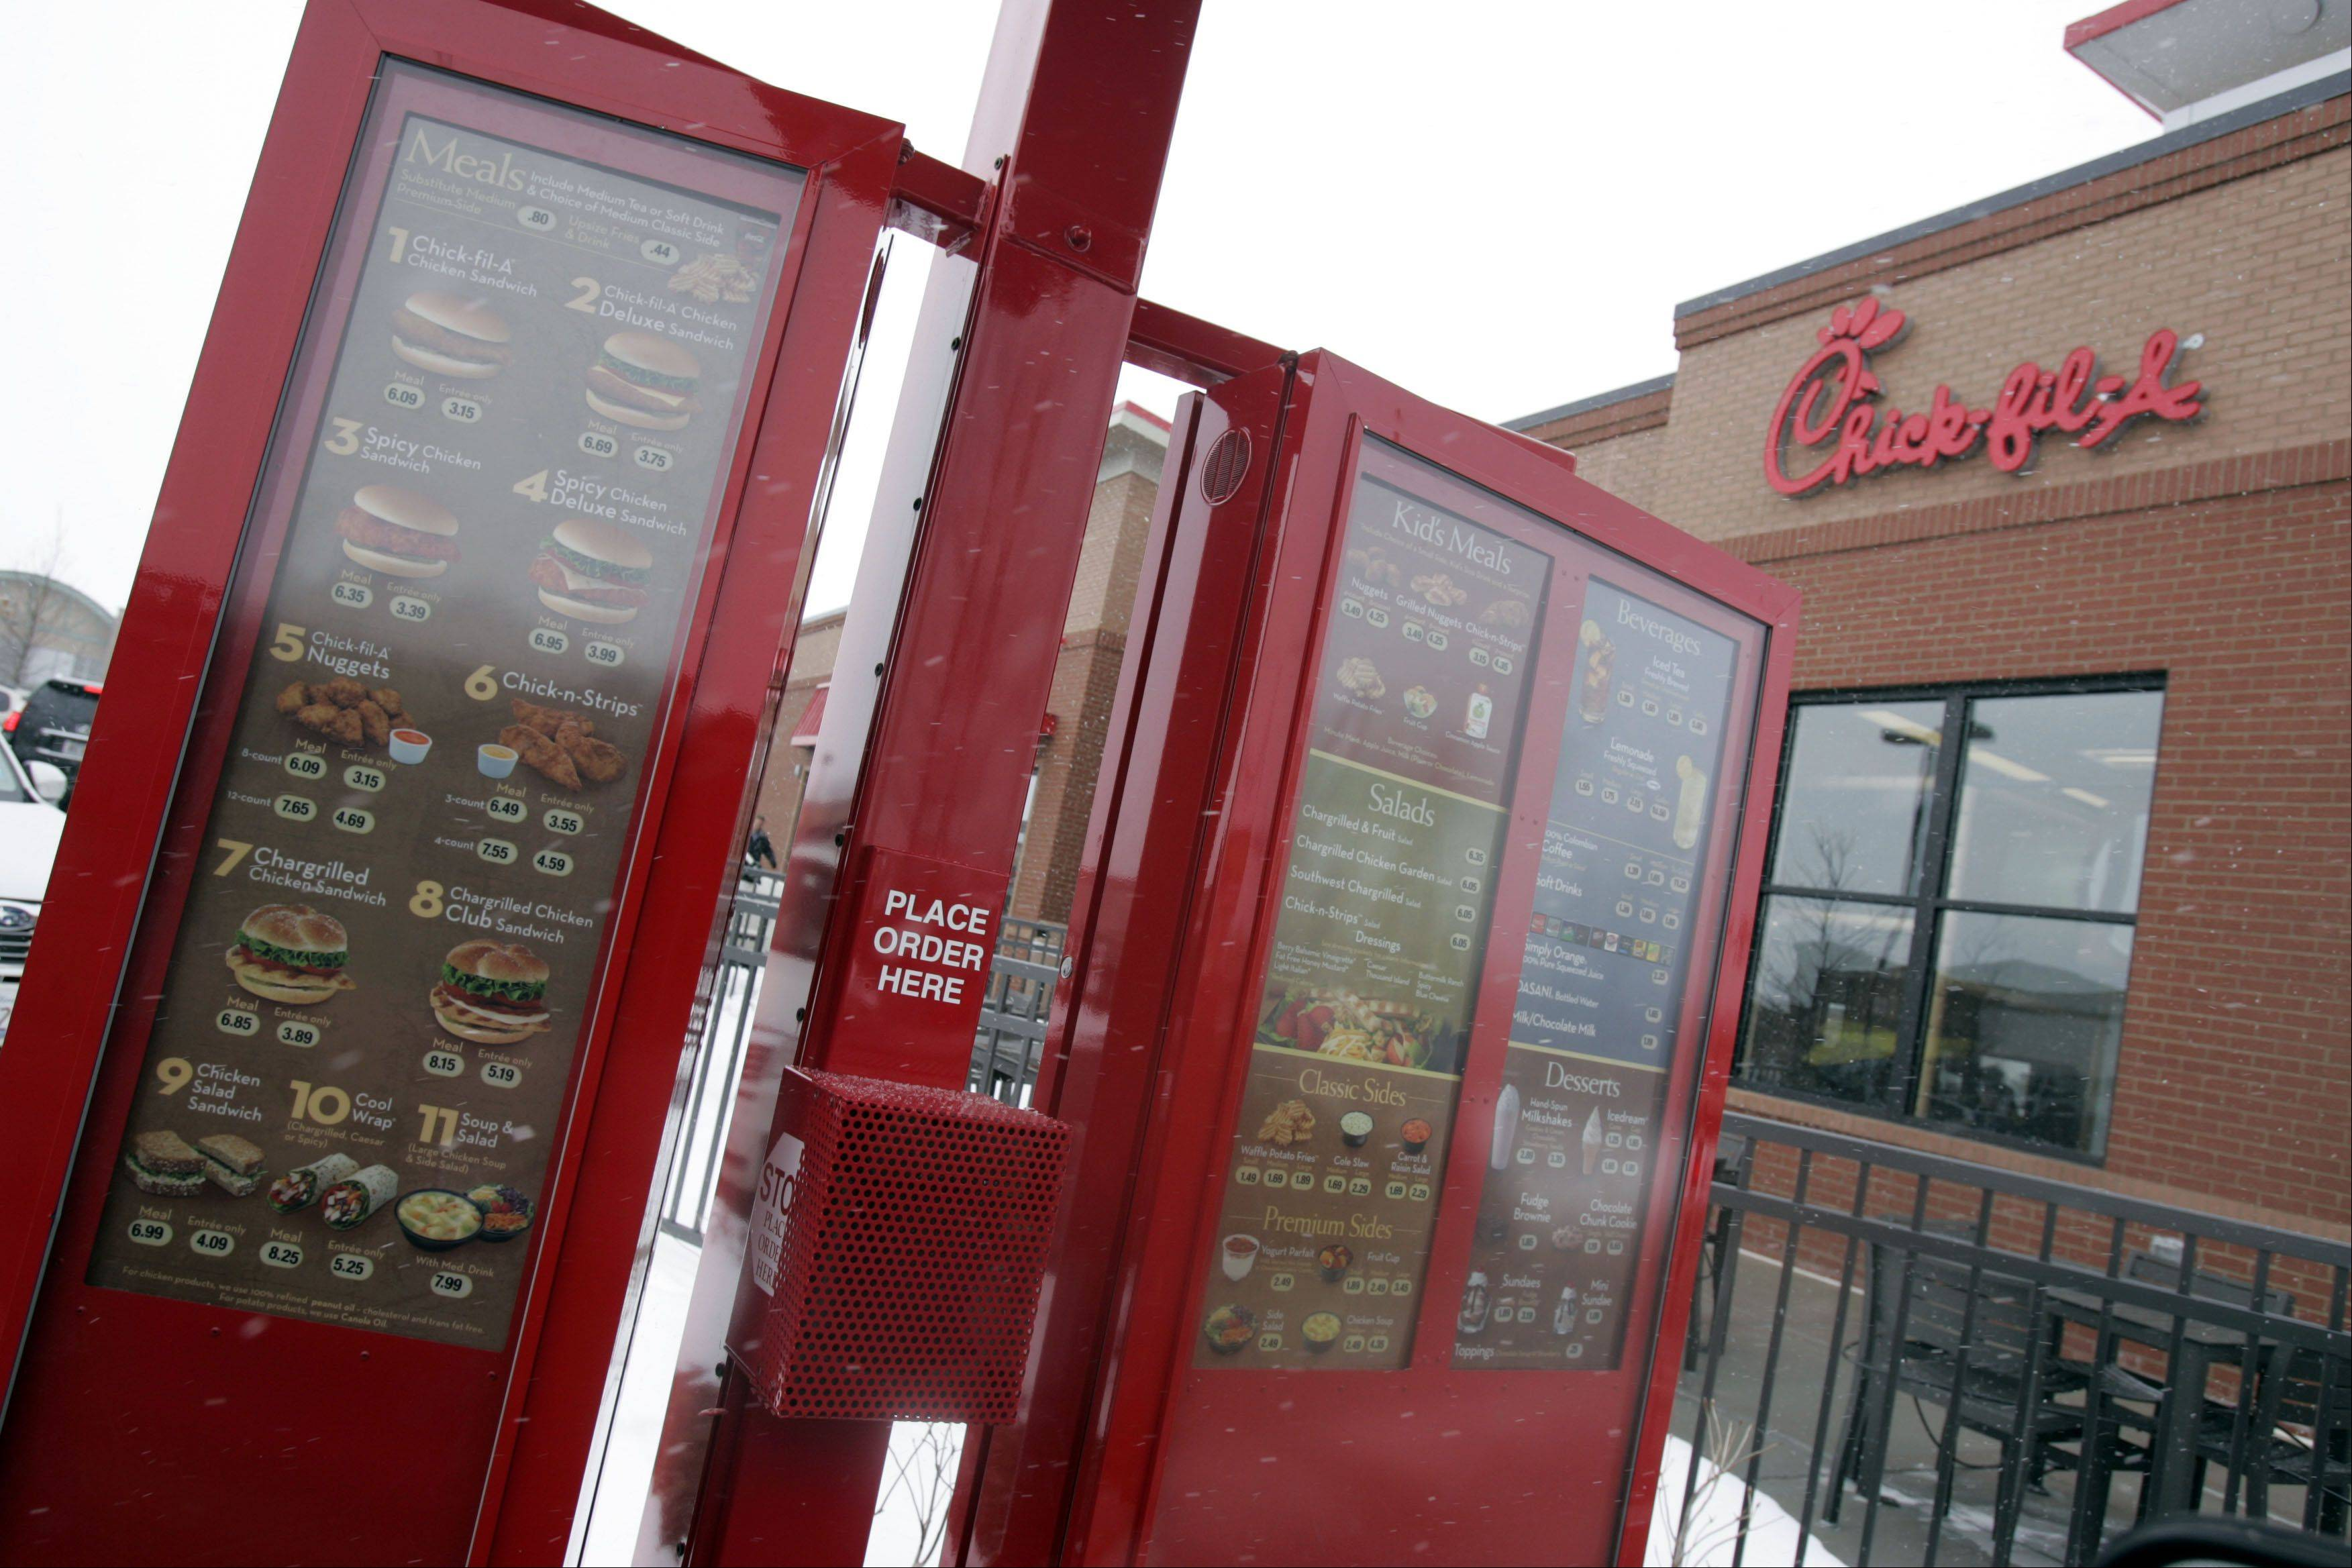 If you haven't had a chance to drop in on the popular Chick-fil-A restaurant in Batavia, don't make the mistake of going on Sunday. It's closed.